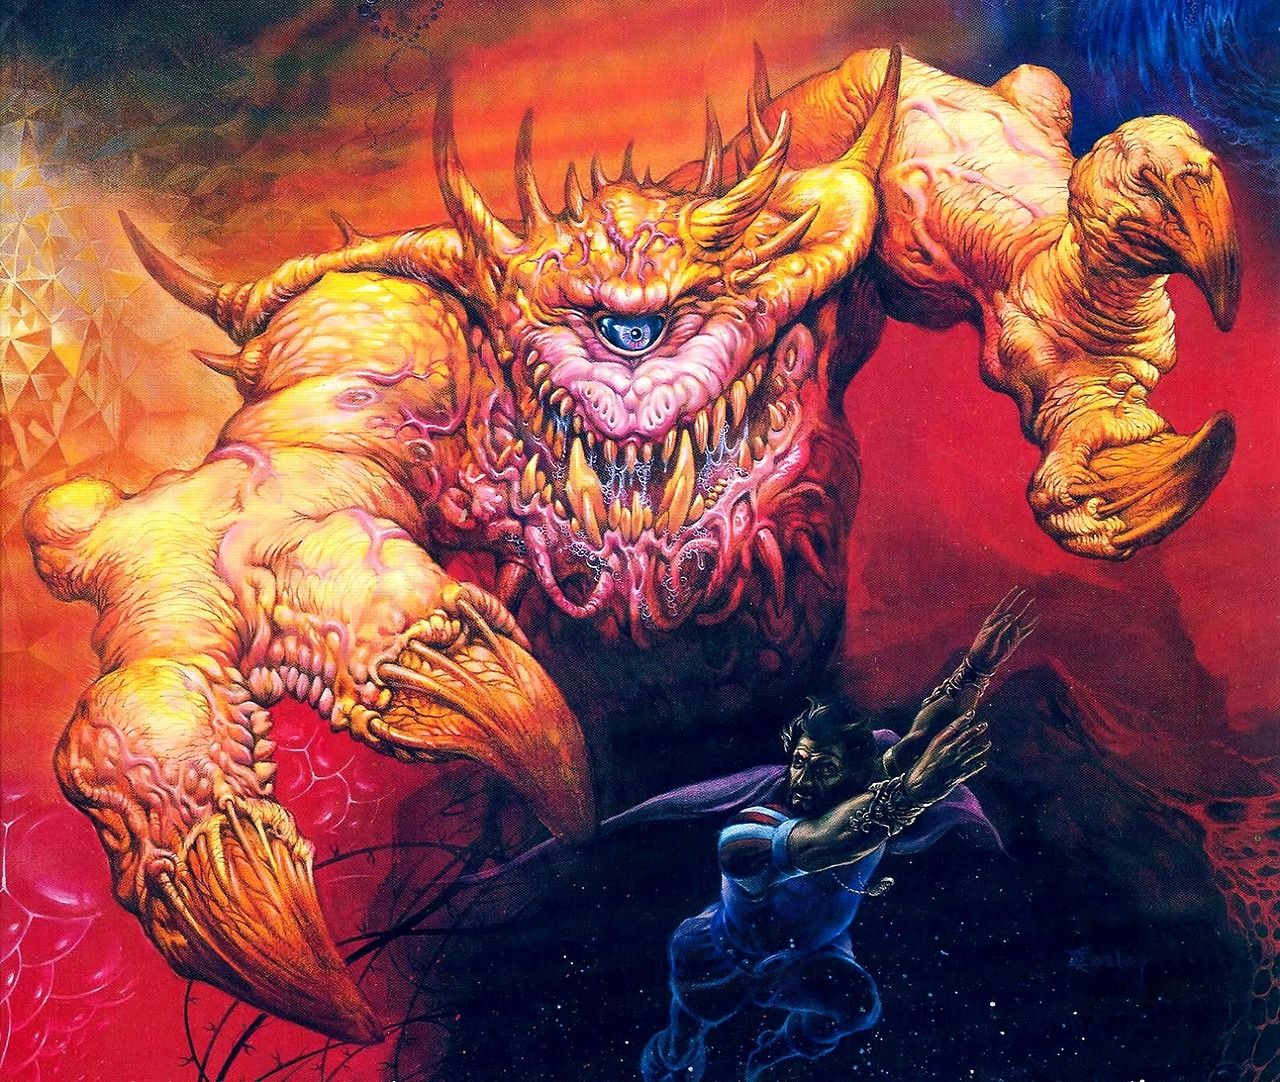 80s Fantasy Art One Of My Absolute Fave Pieces By Jeff